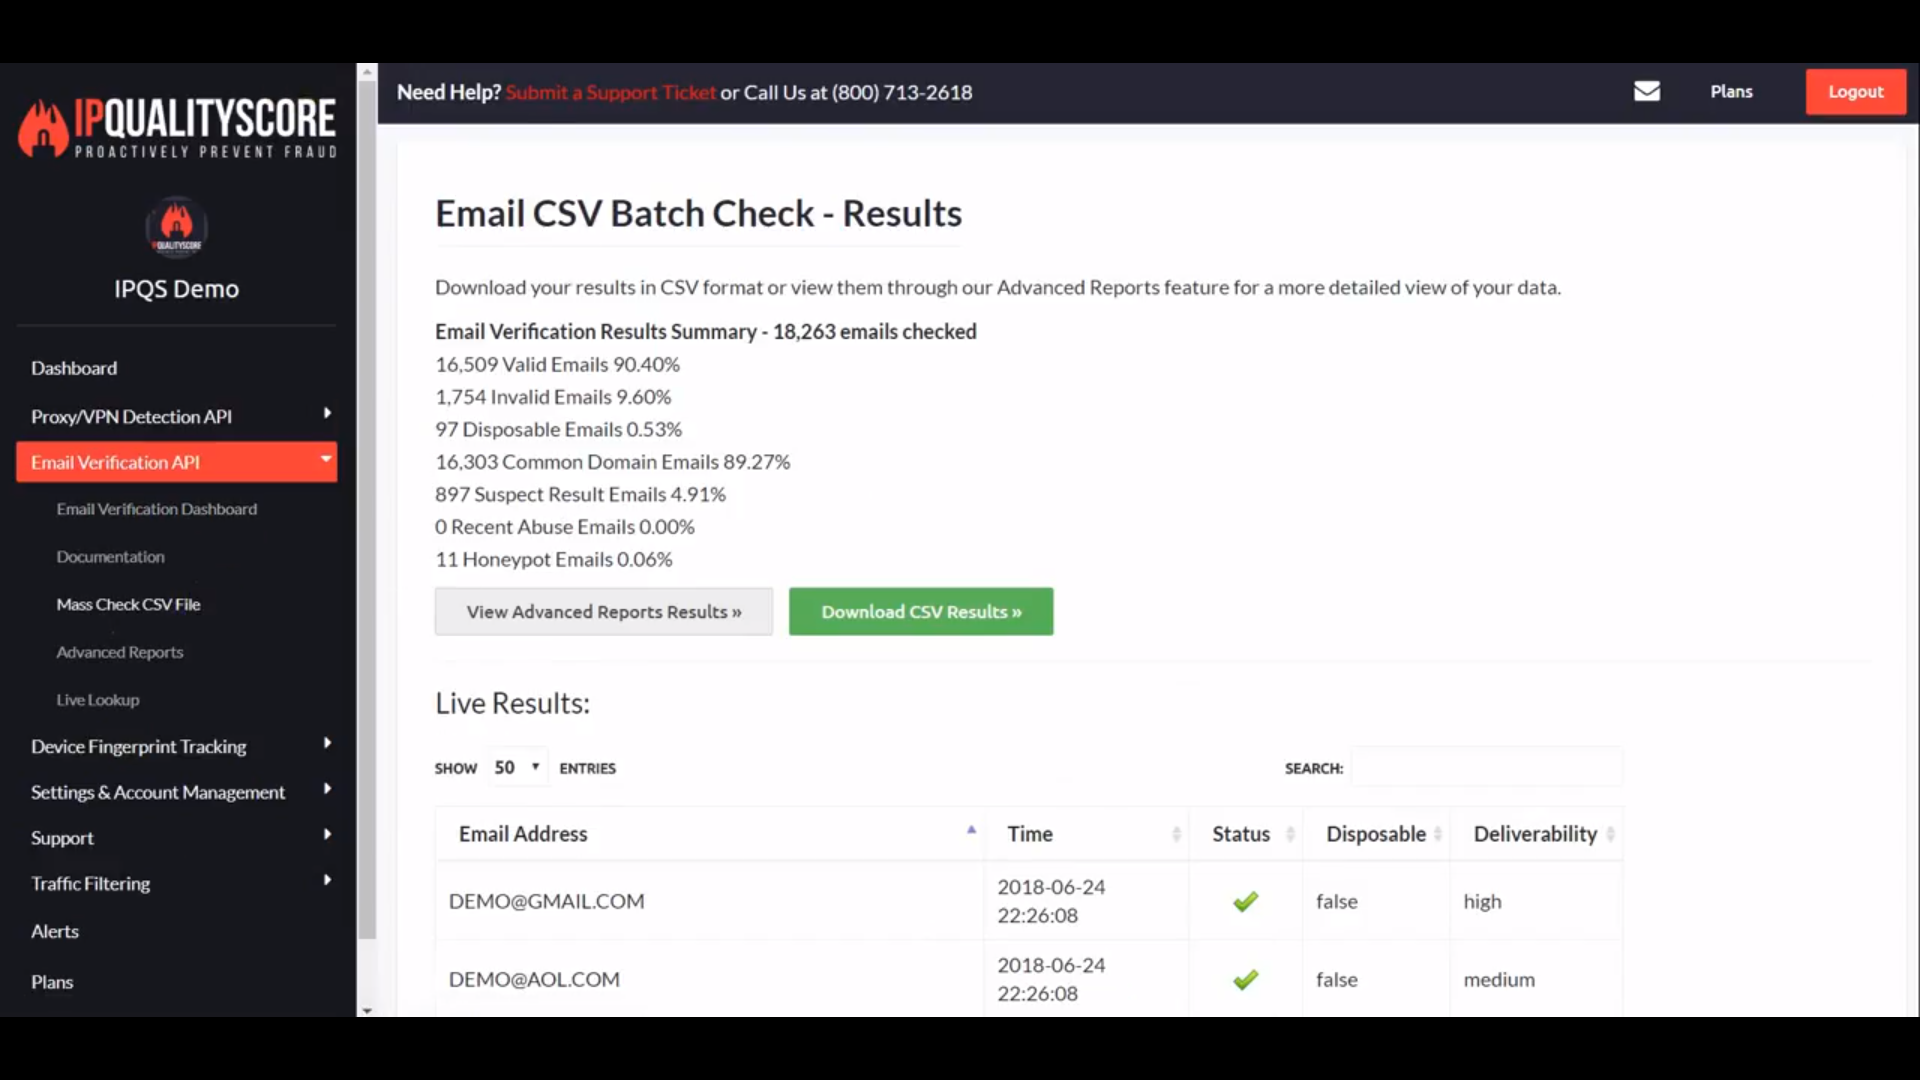 IPQualityScore Email Verification download reports